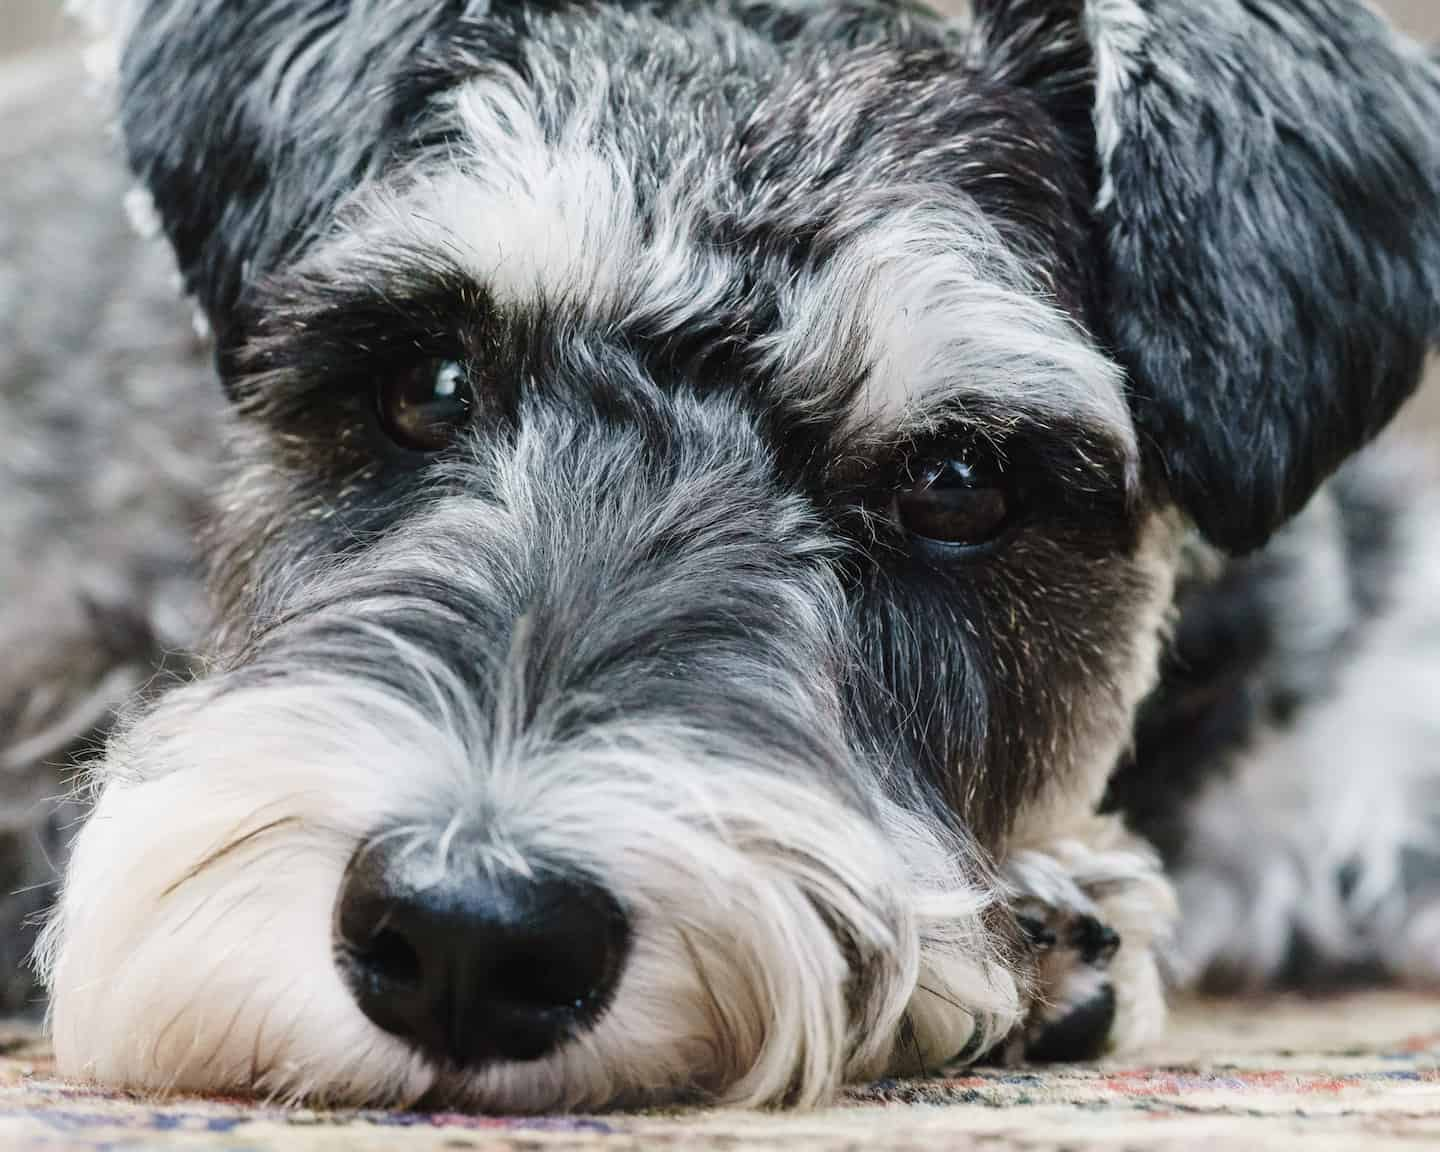 My Dog Friendly London By Rusty Red The Schnauzer | Dog Friendly Shoreditch and Hoxton